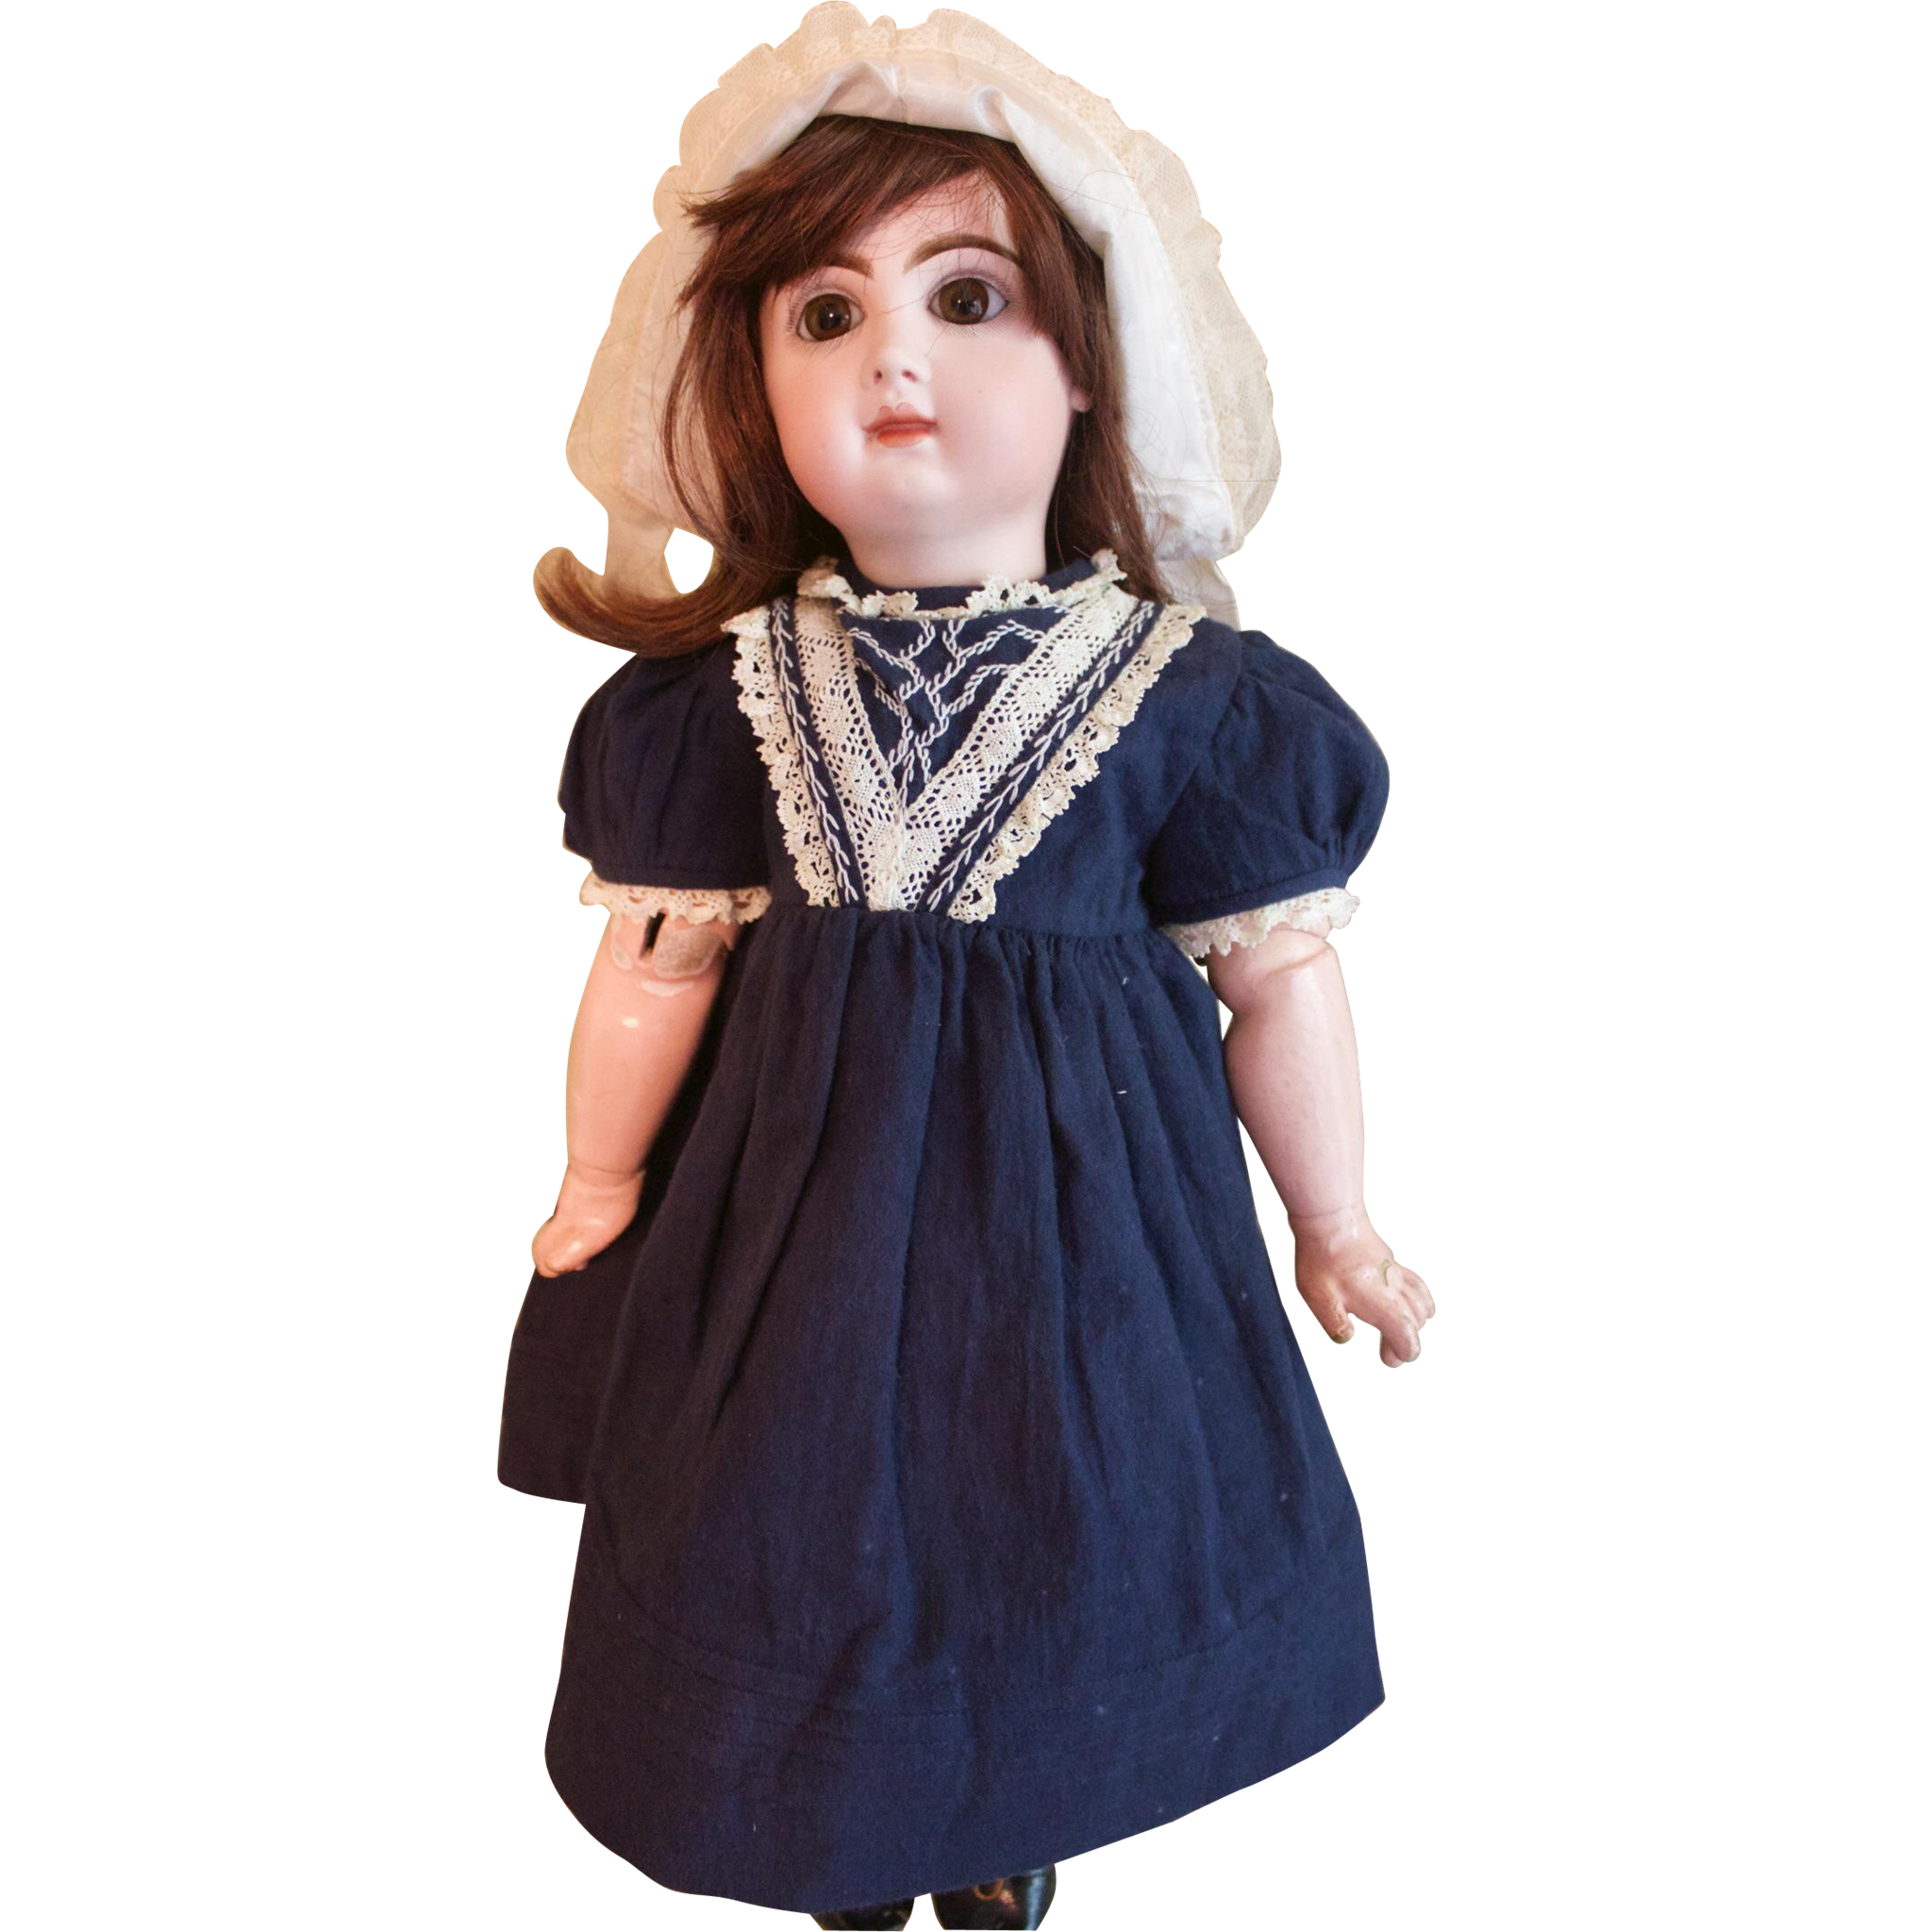 Gorgeous 21 inch closed-mouth Tete Jumeau Doll